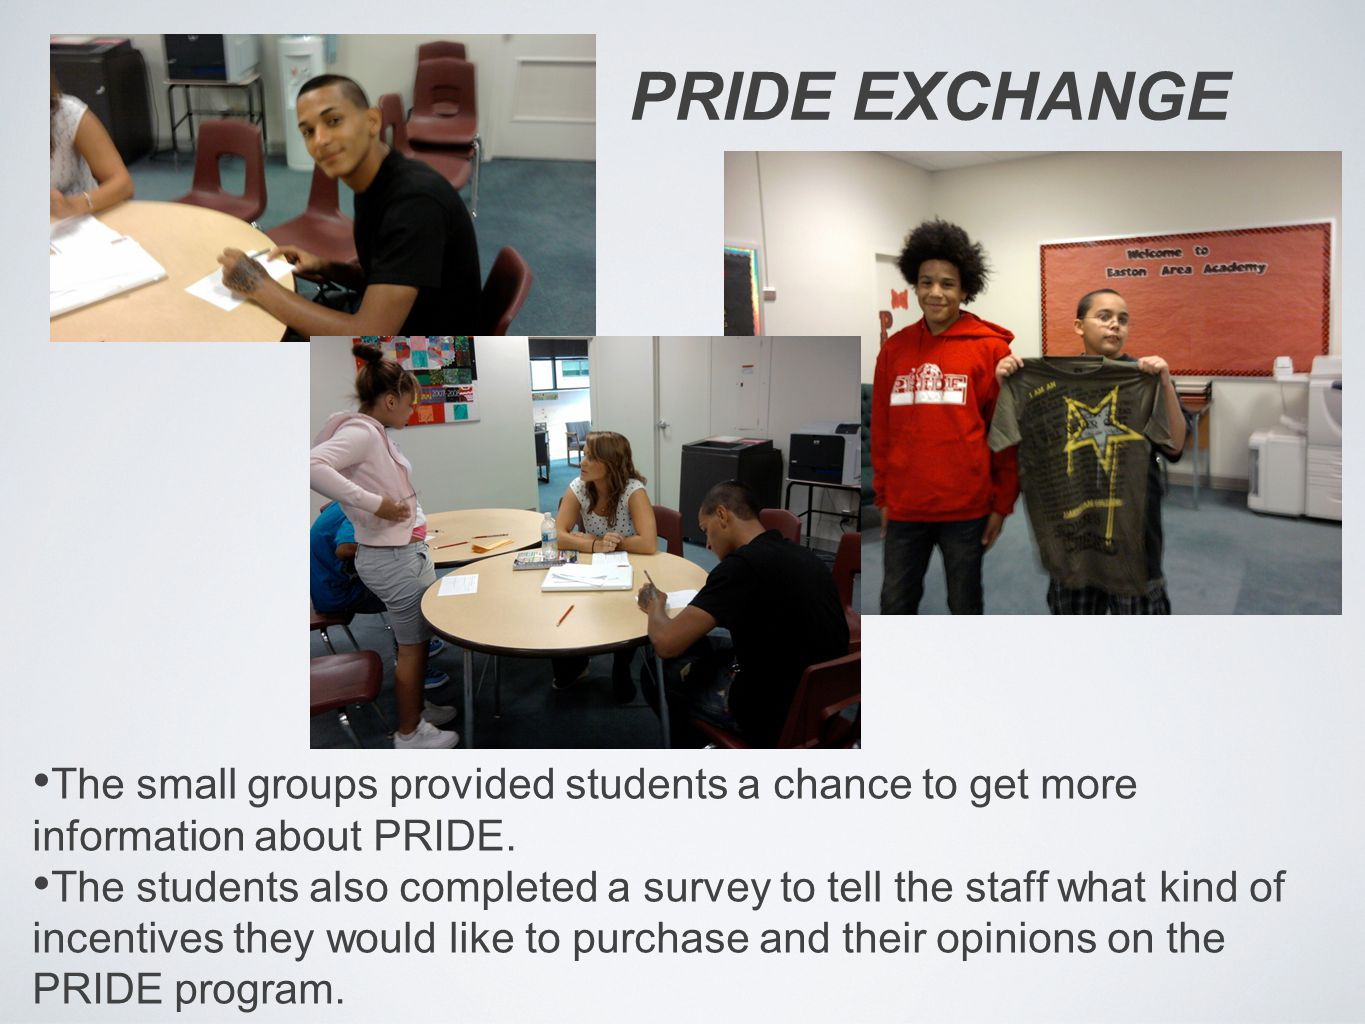 The small groups provided students a chance to get more information about PRIDE.